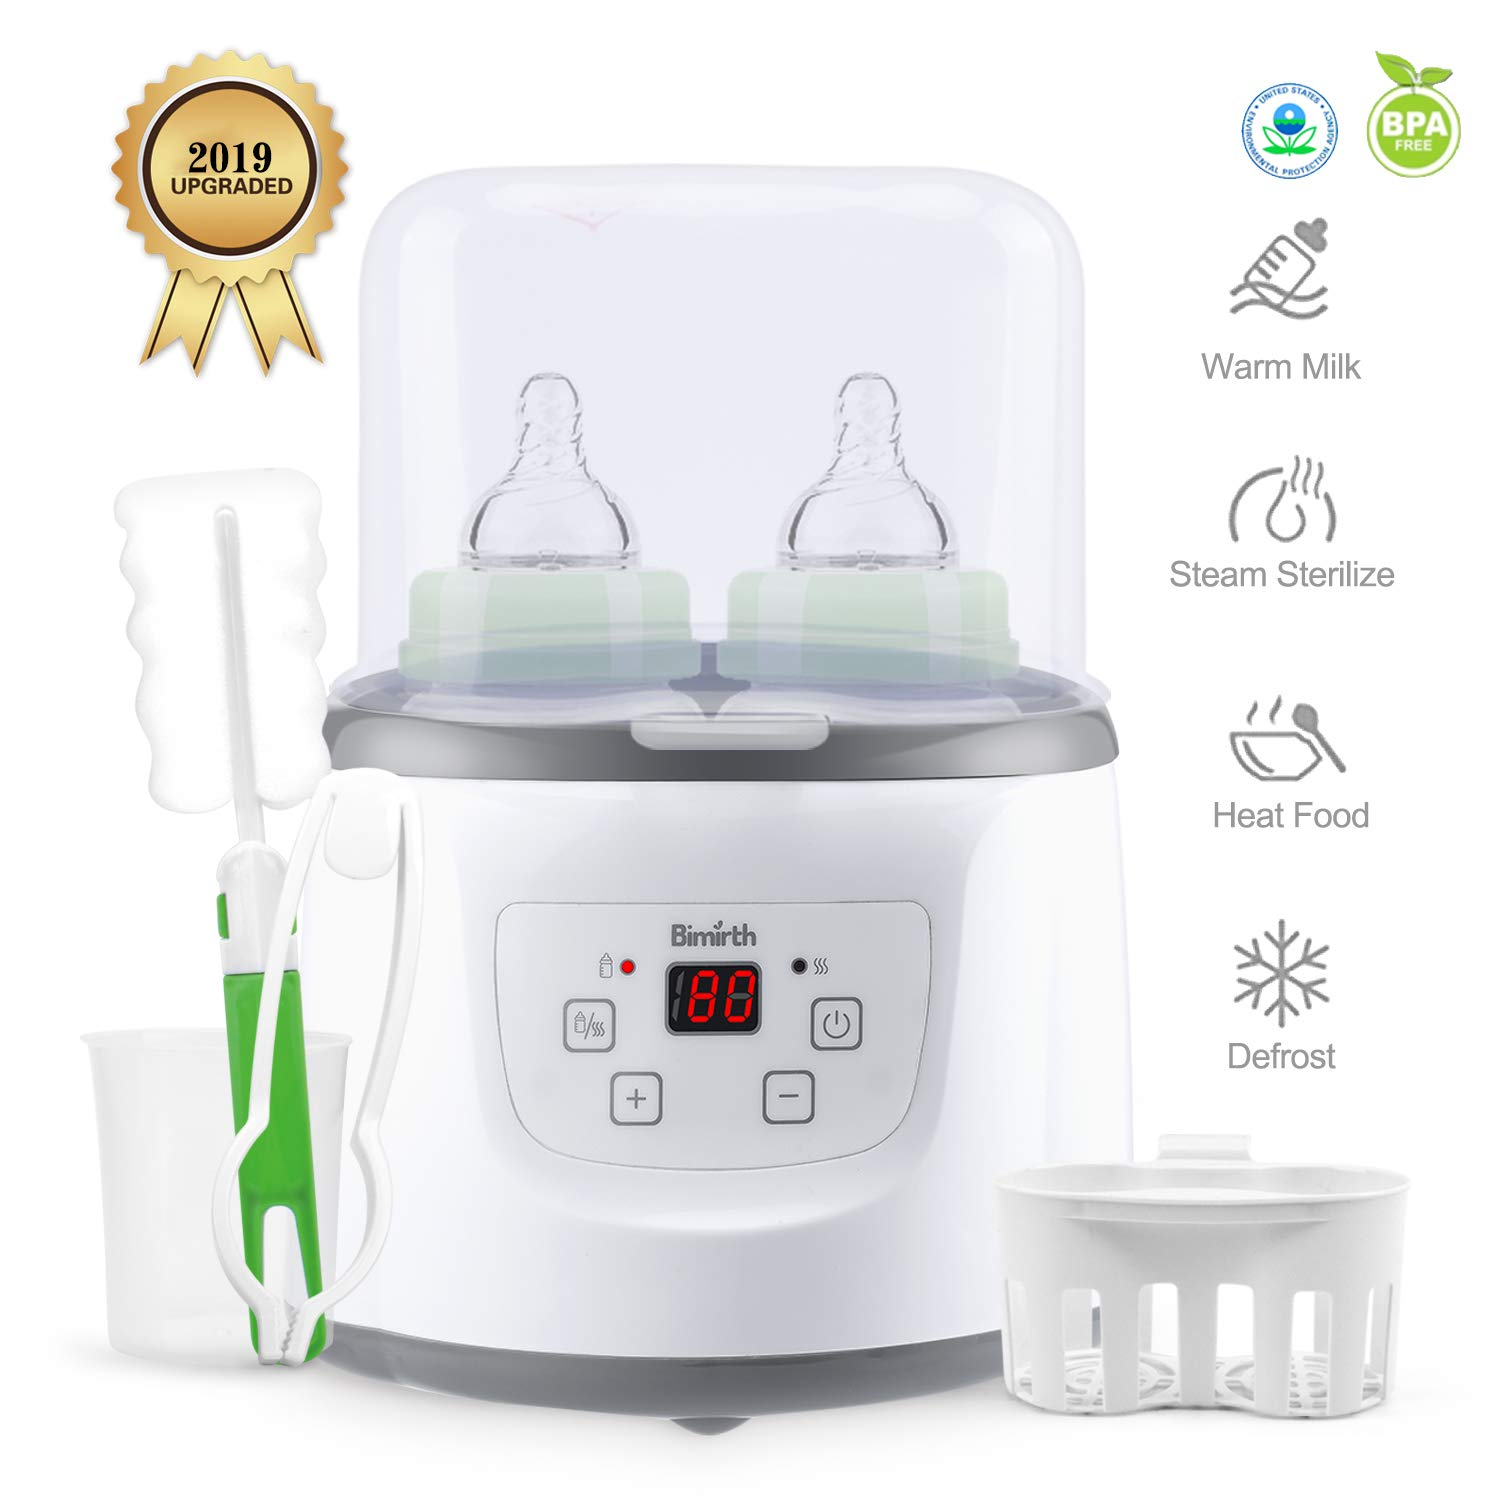 Baby Bottle Warmer Bottle Sterilizer Smart Portable Bottle Warmer and Baby Food Heater for Breast Milk or Formula with LCD Real-time Display Fast Warming